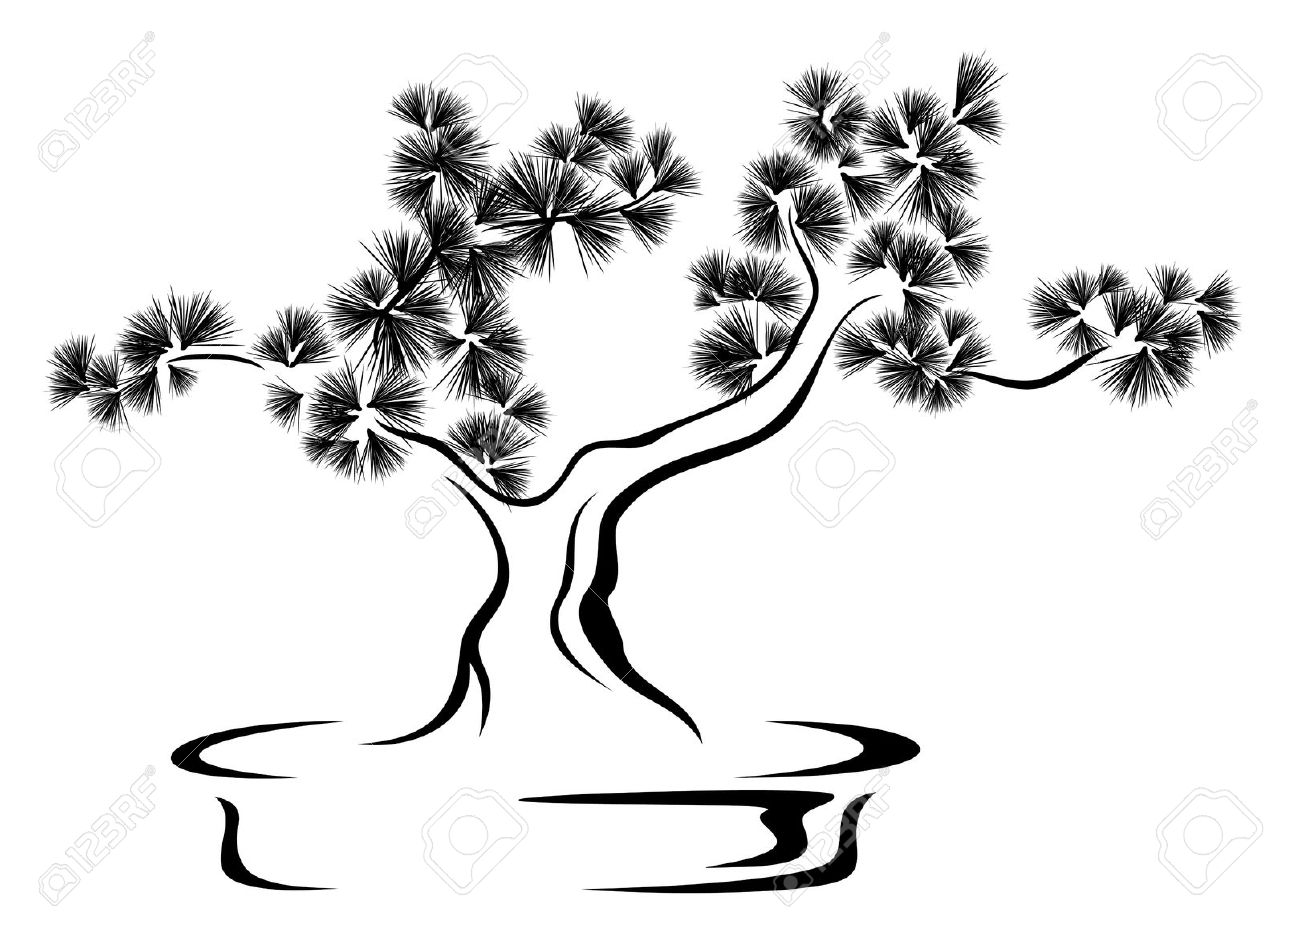 Bonsai clipart #11, Download drawings